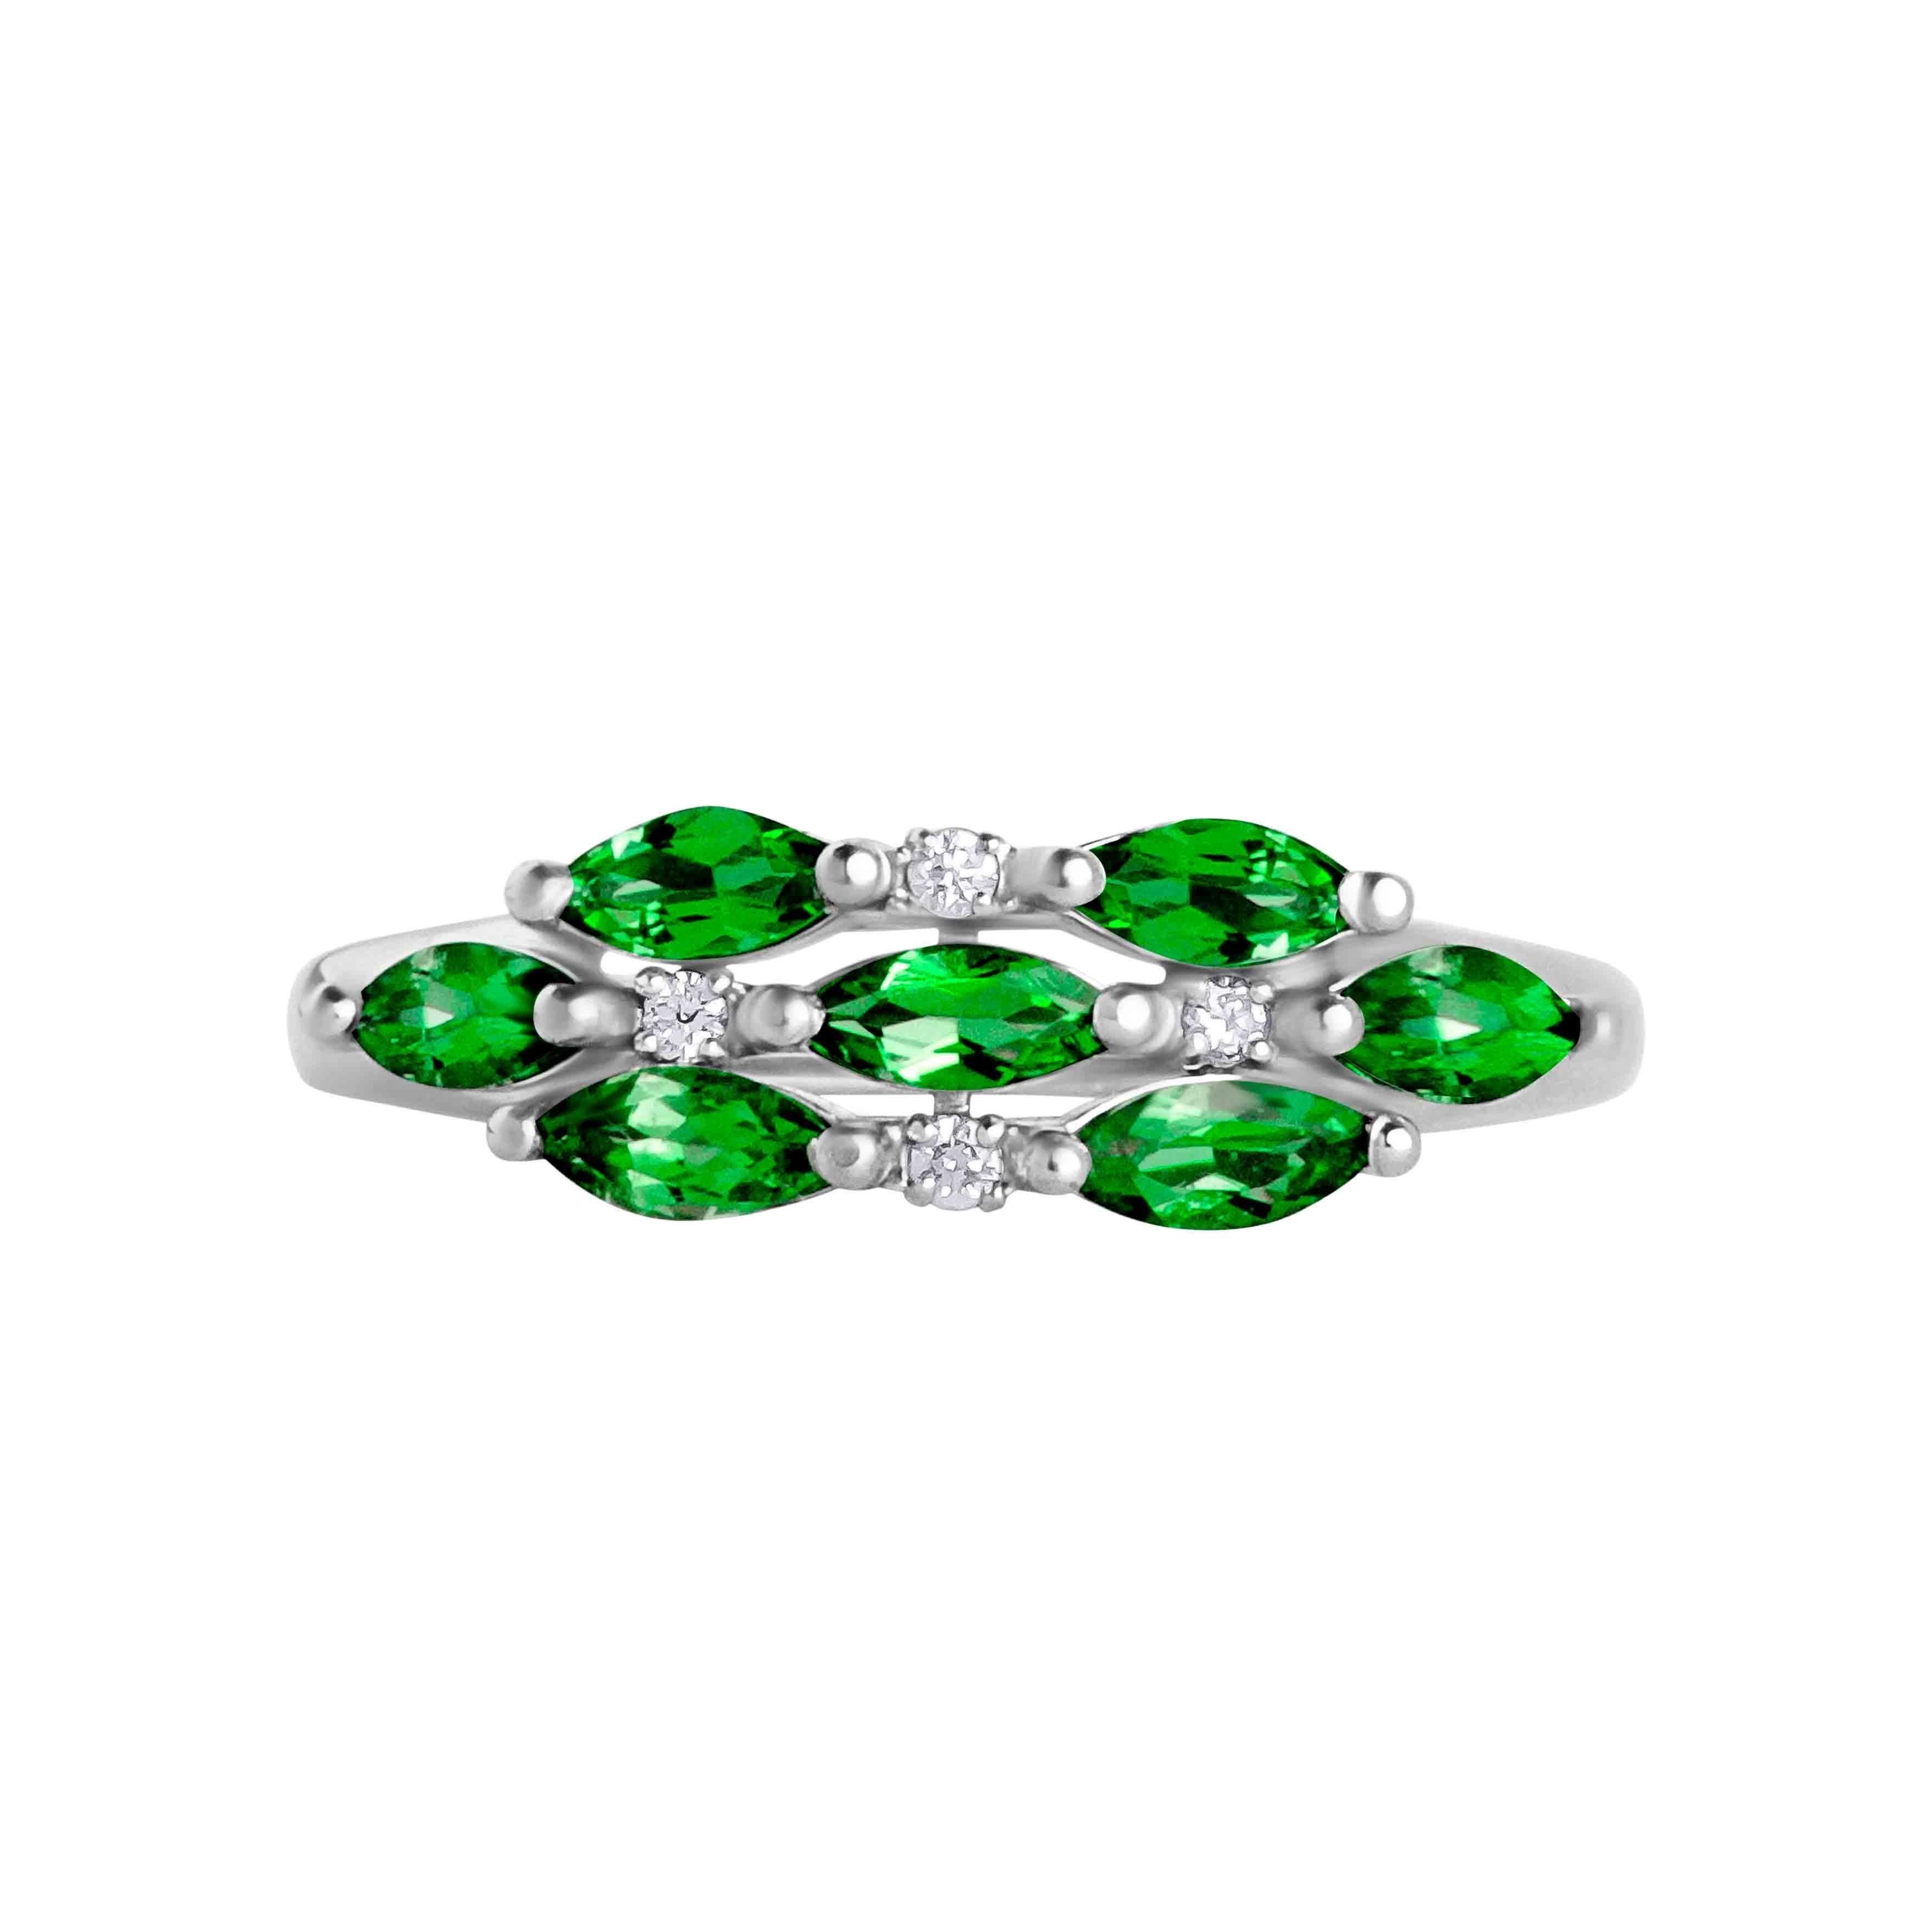 7 marquise emeralds  Russian ring. View 2.